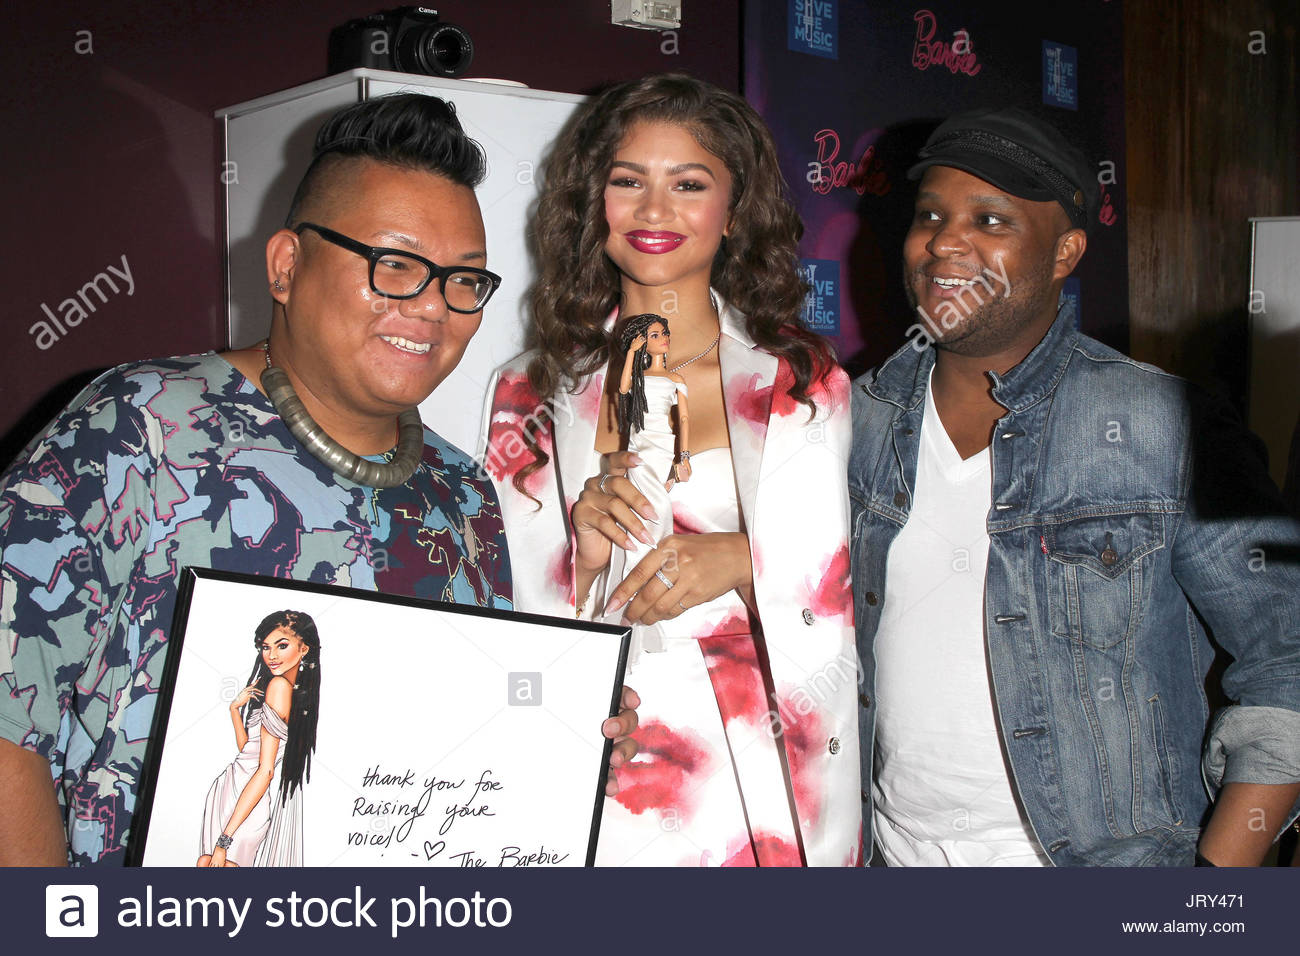 Zendaya zendaya receiving her one of a kind barbie and meet and zendaya receiving her one of a kind barbie and meet and greet at the barbie rock n royals concert experience dress by msgm makeup is dior beauty kristyandbryce Image collections